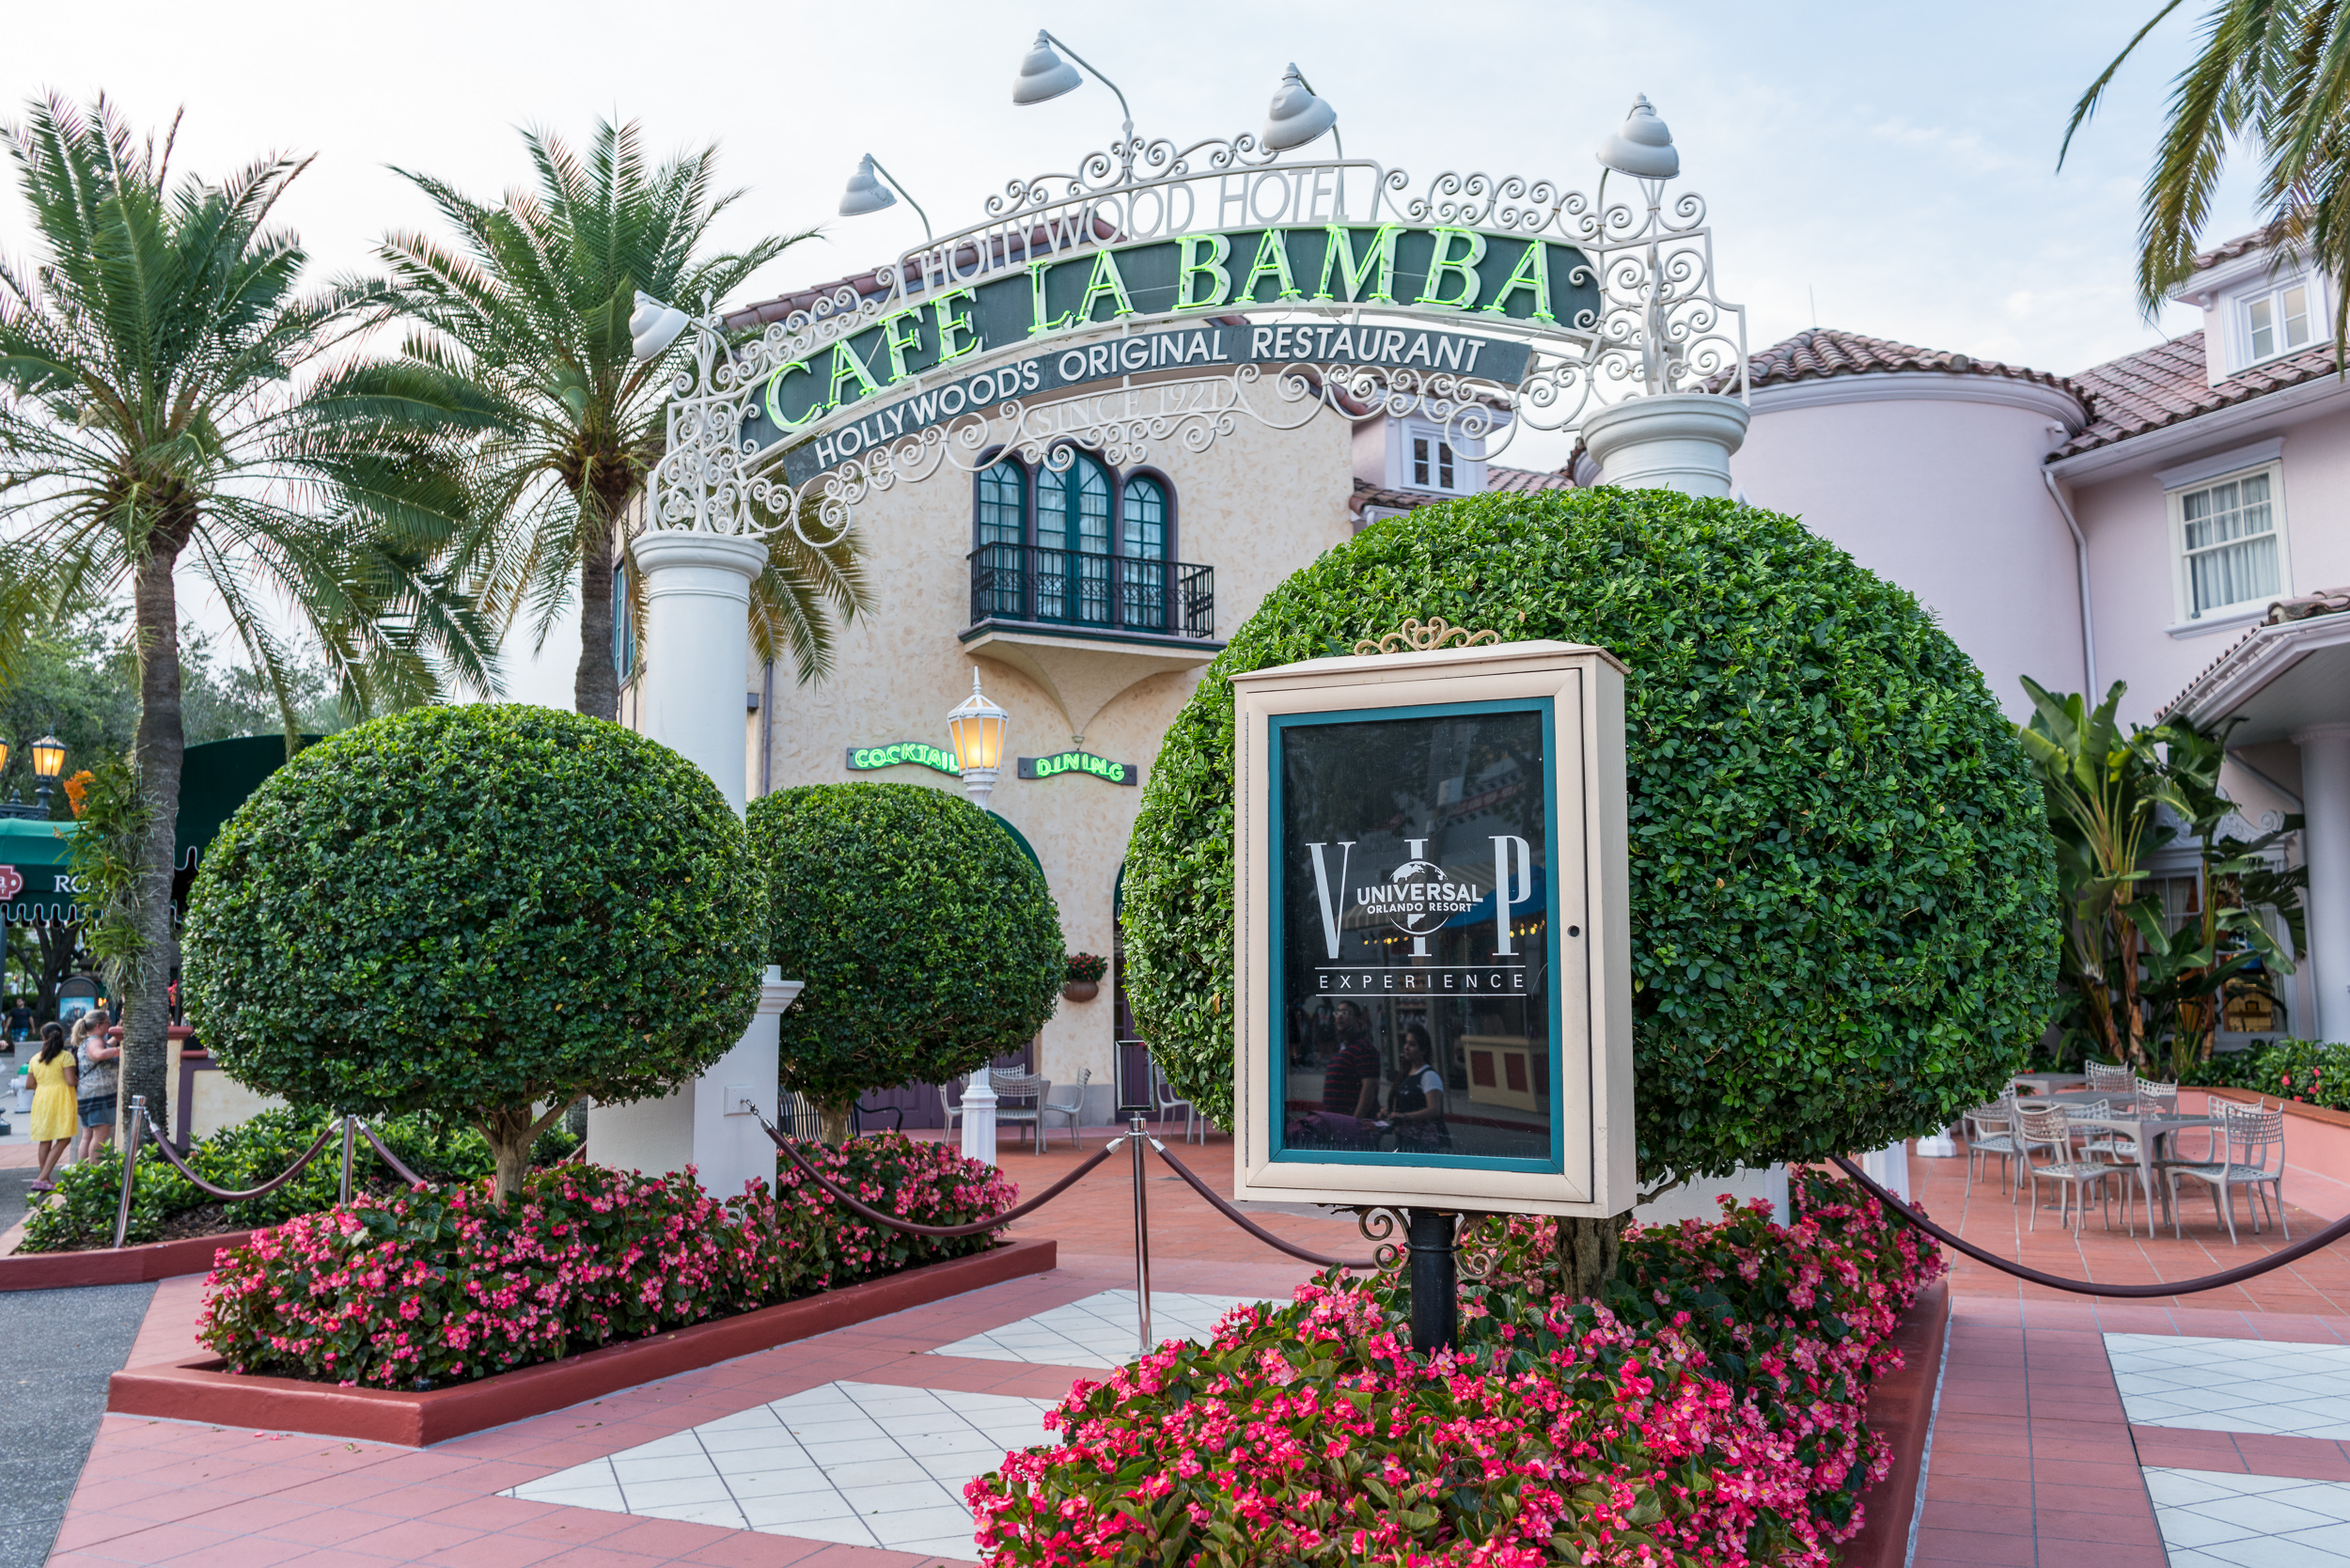 The Hollywood Hotel exterior facade of Cafe La Bamba has the entrance blocked off to all but VIP tour guests